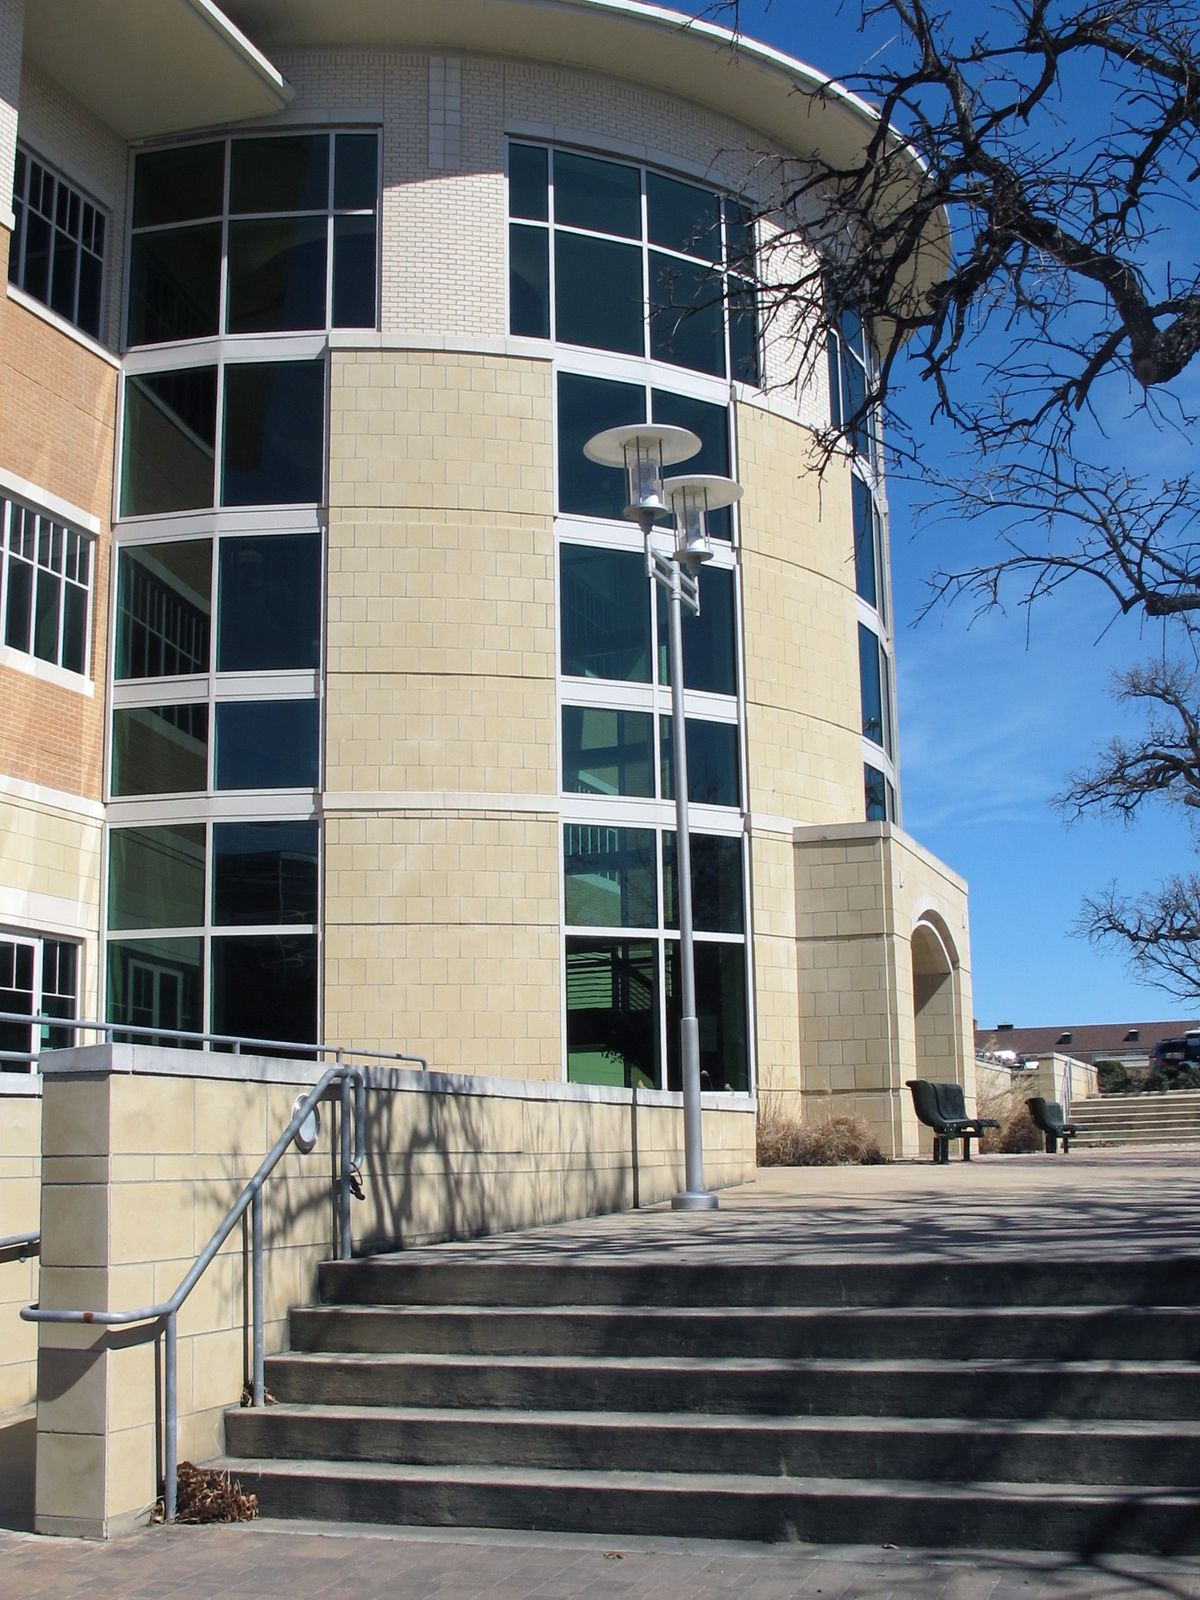 University of North Texas Schools Photo Video Shoot Location52.jpg